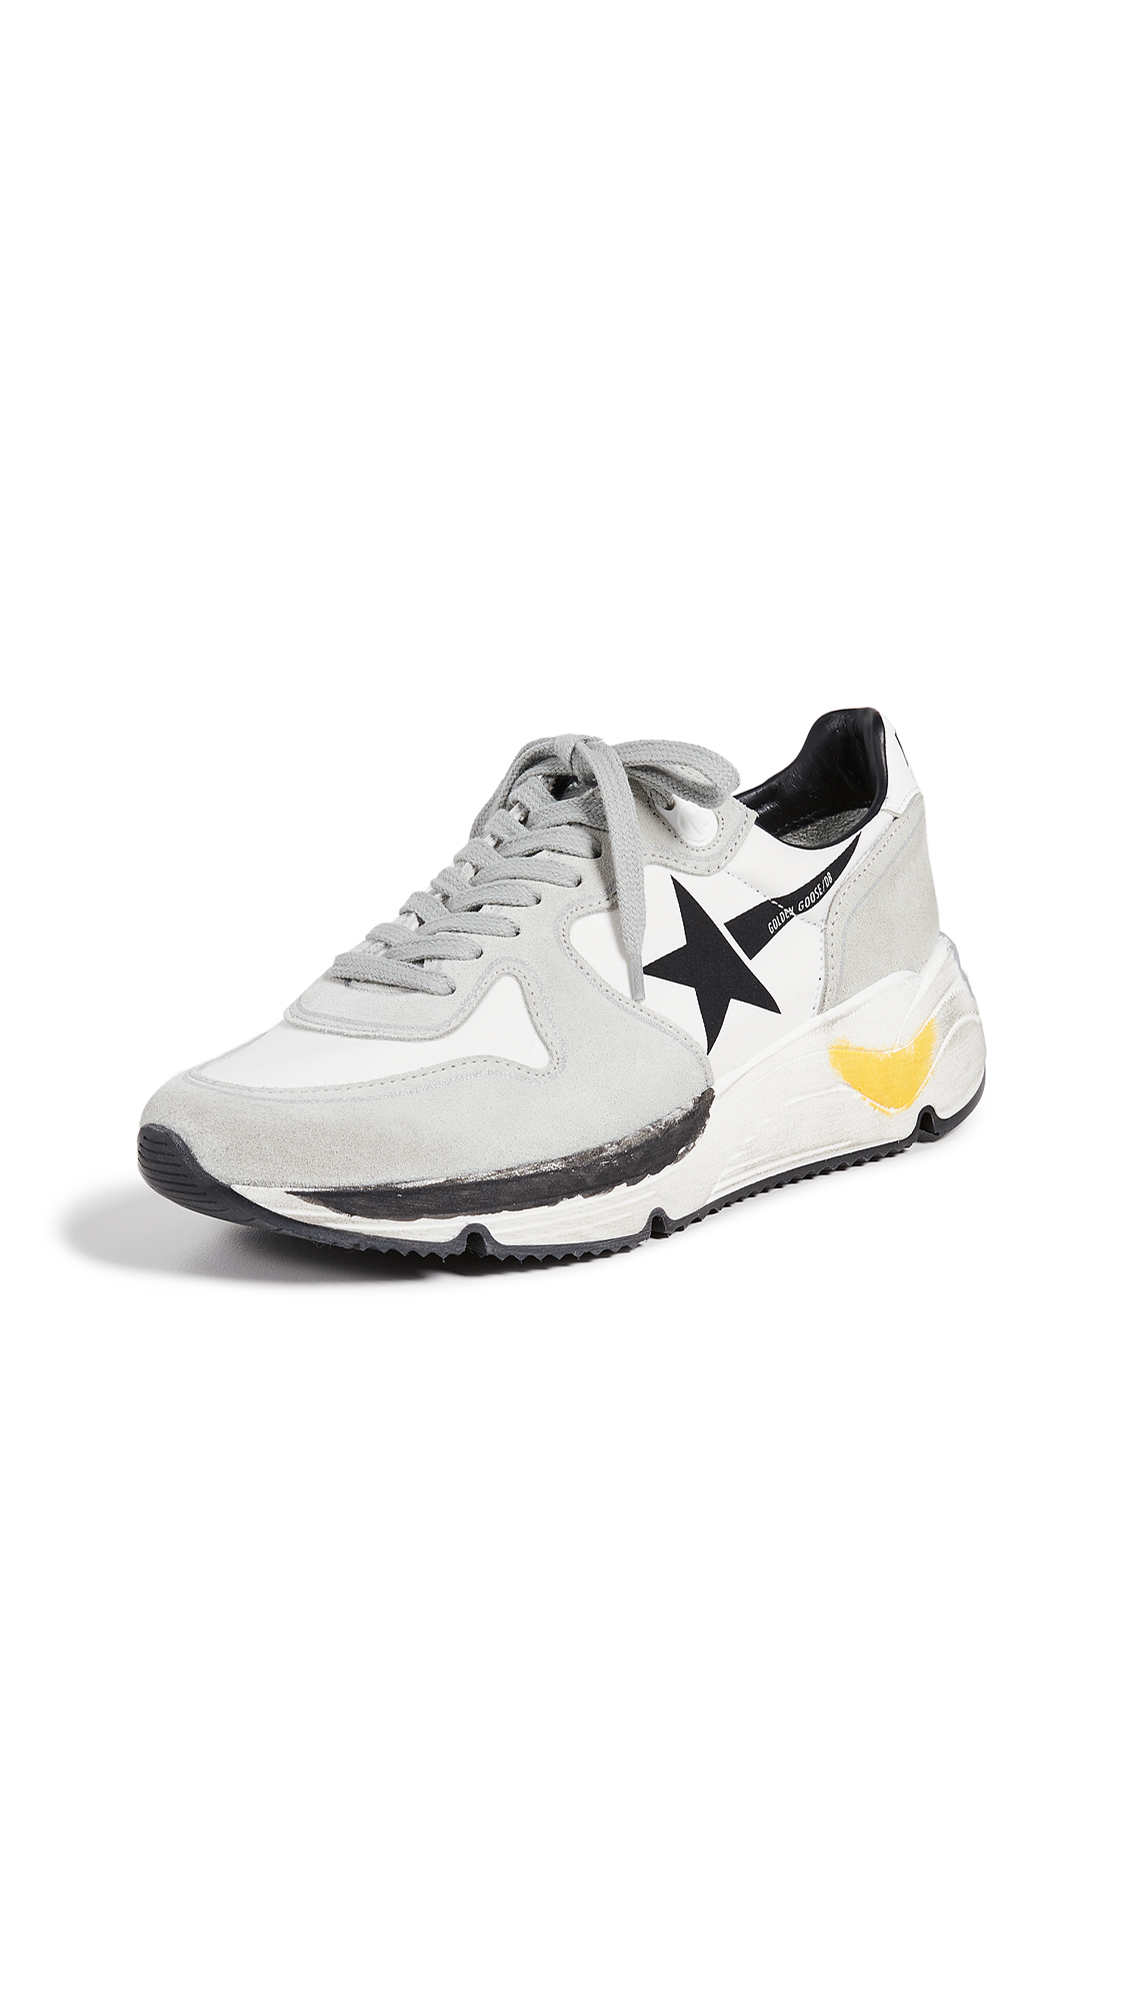 Golden Goose Running Sole Sneakers - White Lycra/Black